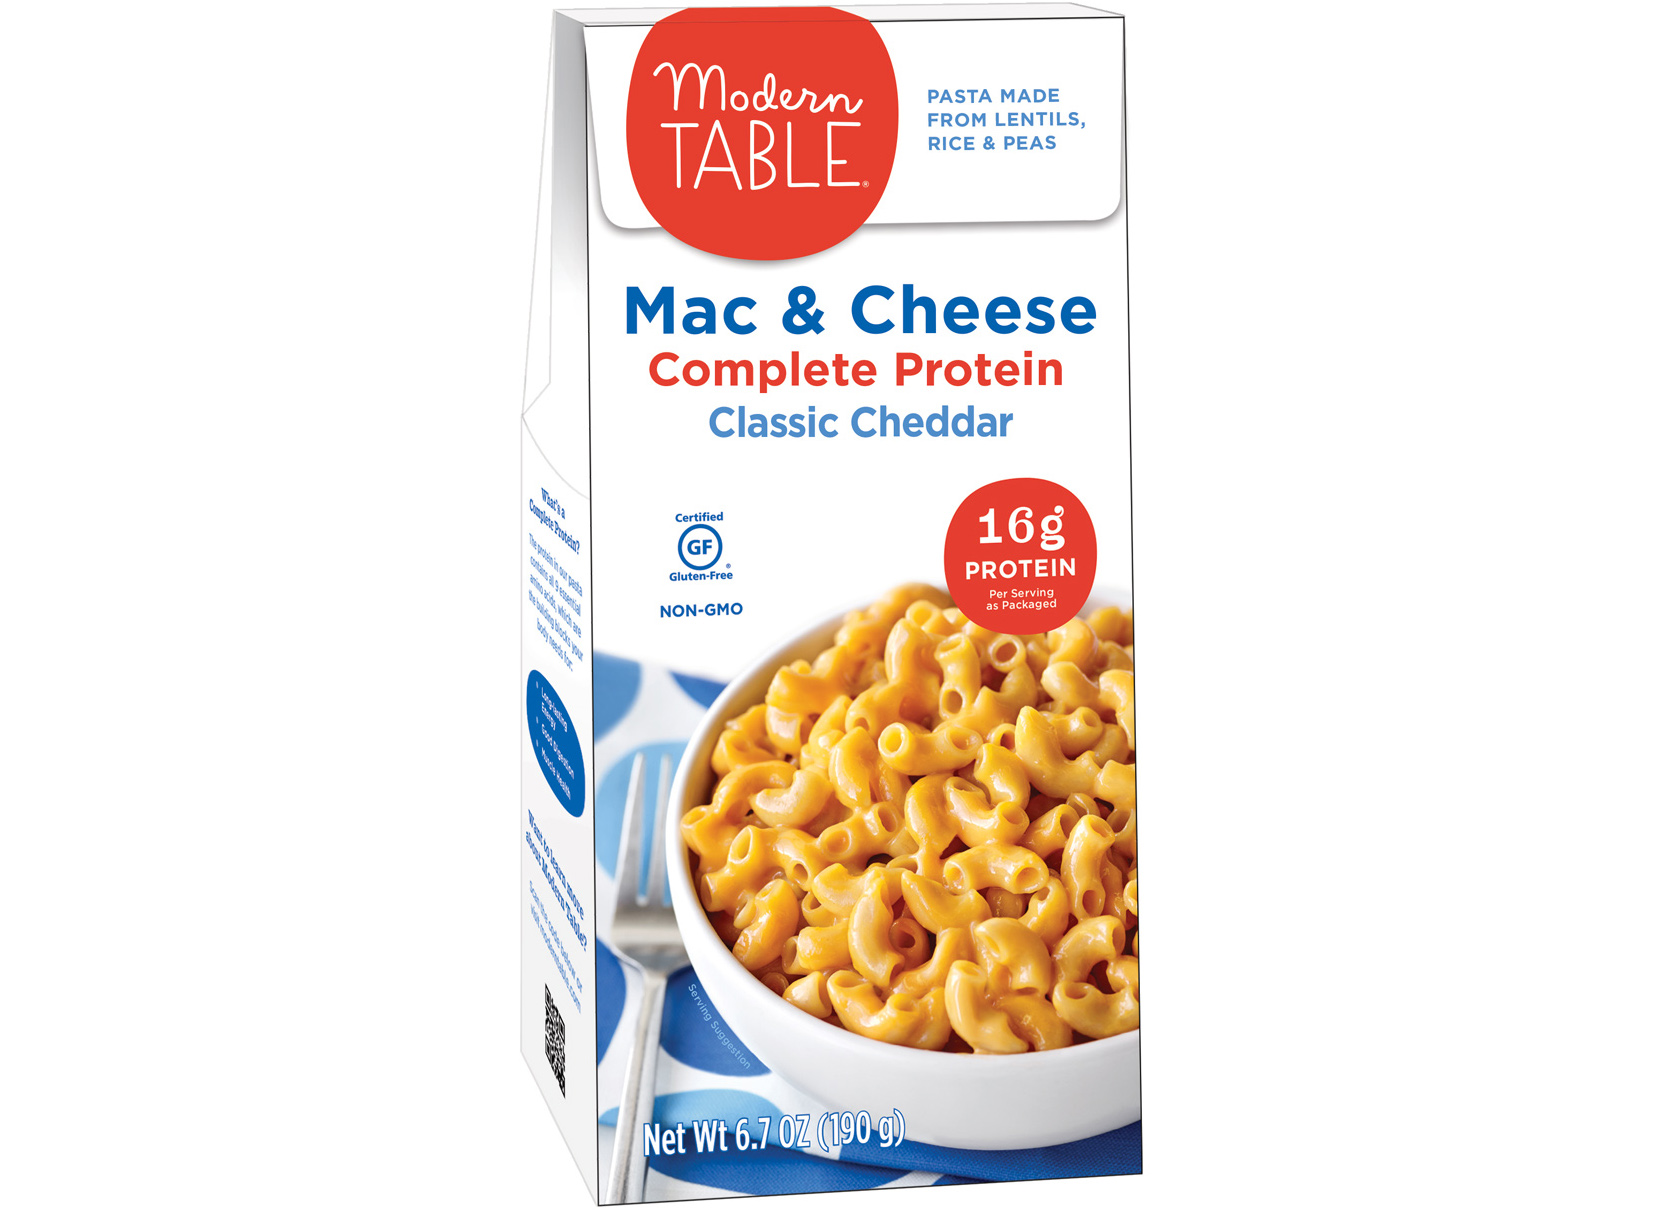 Modern Table complete protein cheddar mac and cheese